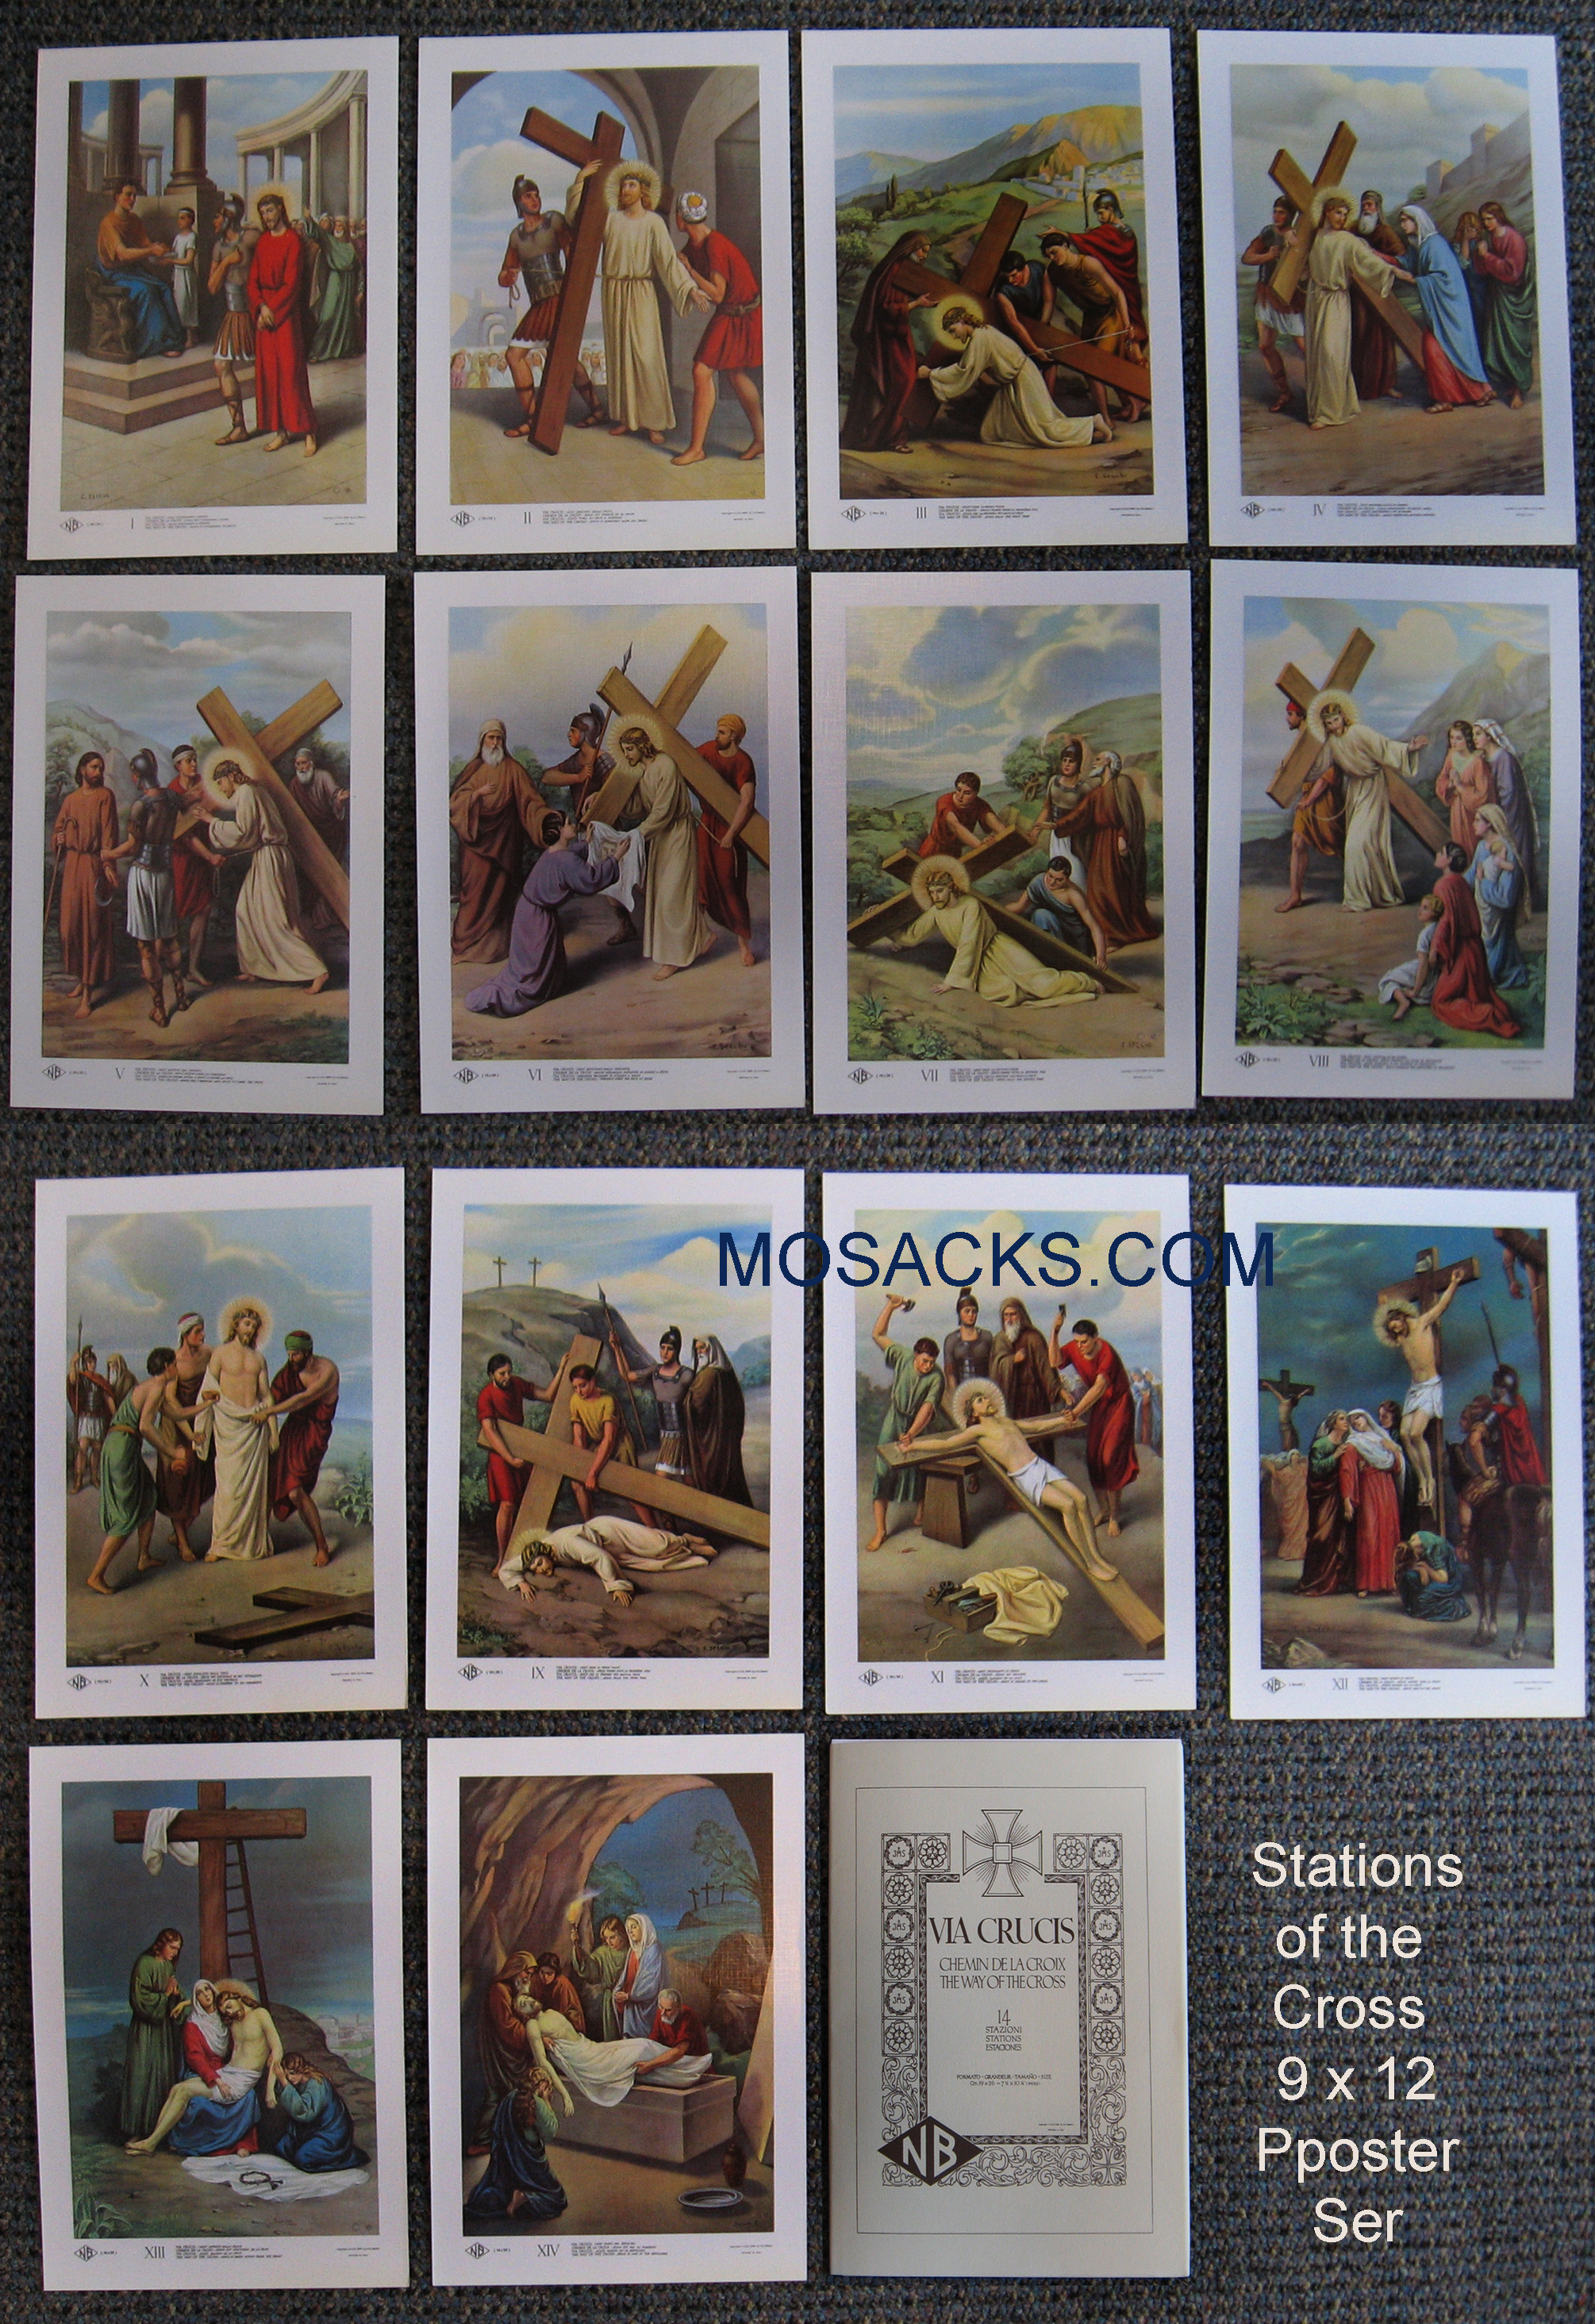 Via Crucis Stations Of The Cross 9x12 Inch Poster Set - 7777